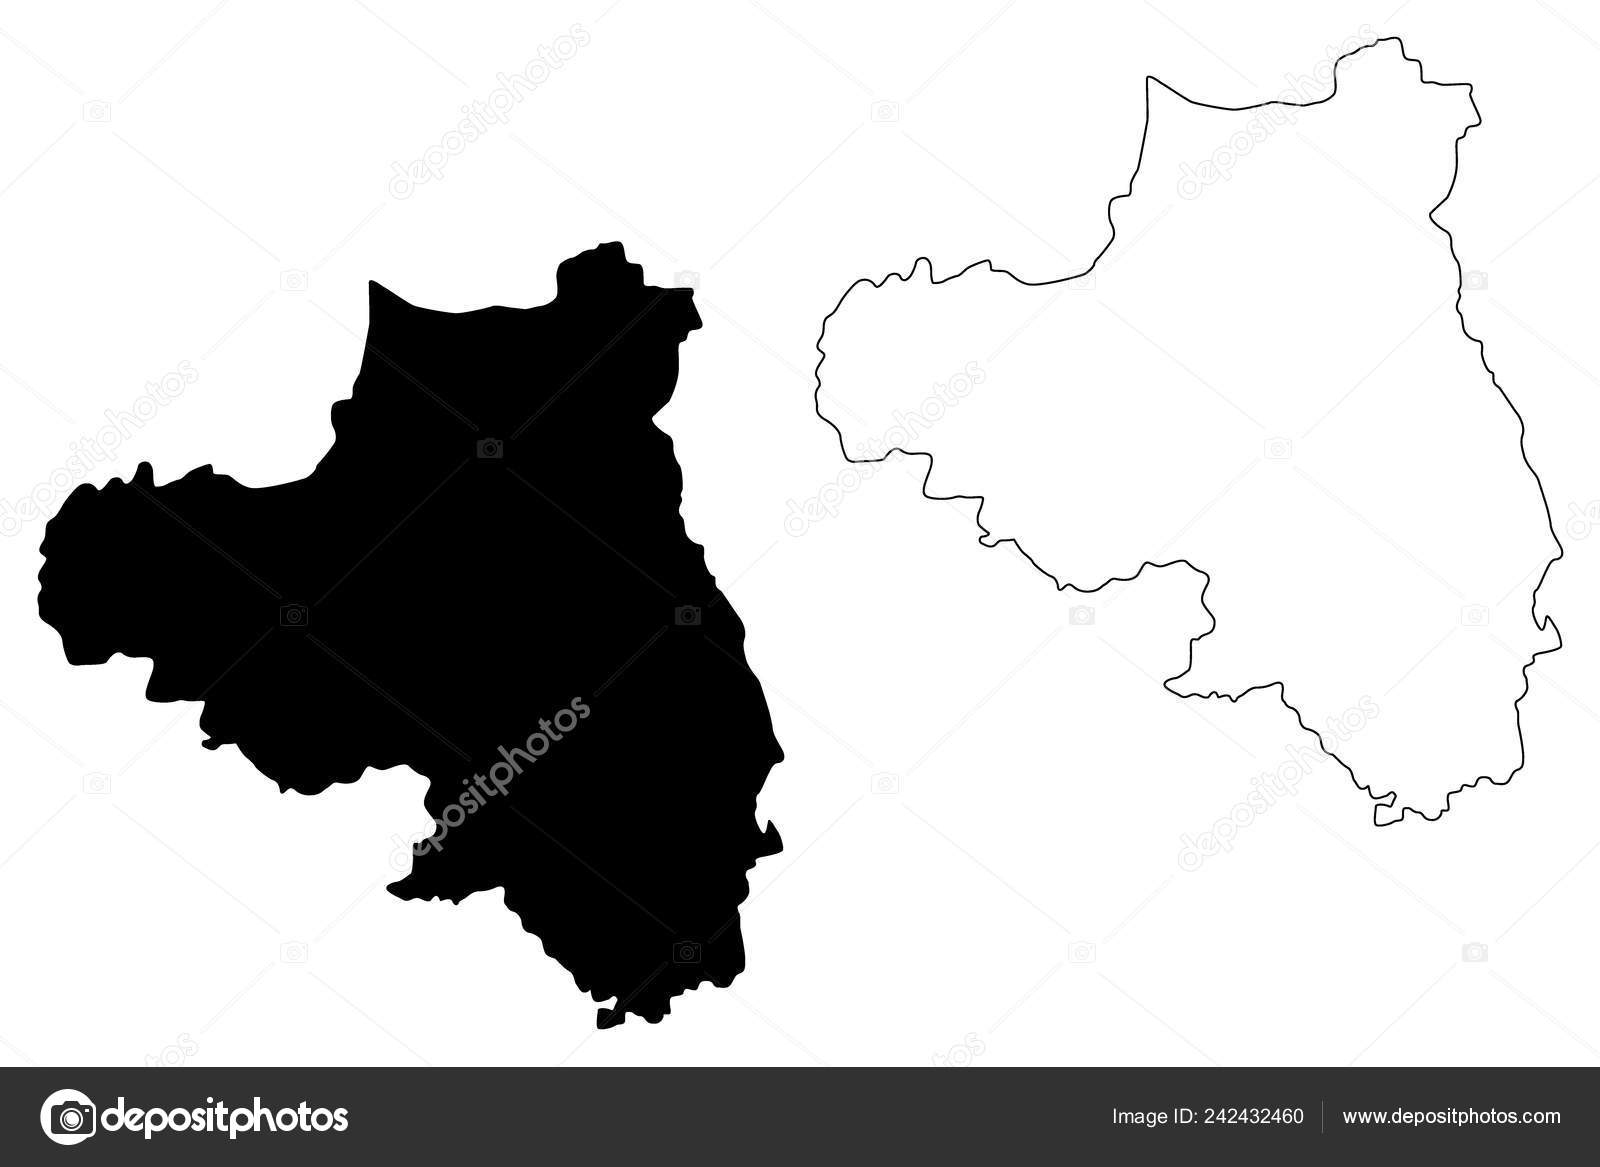 Map Of Uk Ireland Counties.County Londonderry United Kingdom Northern Ireland Counties Northern